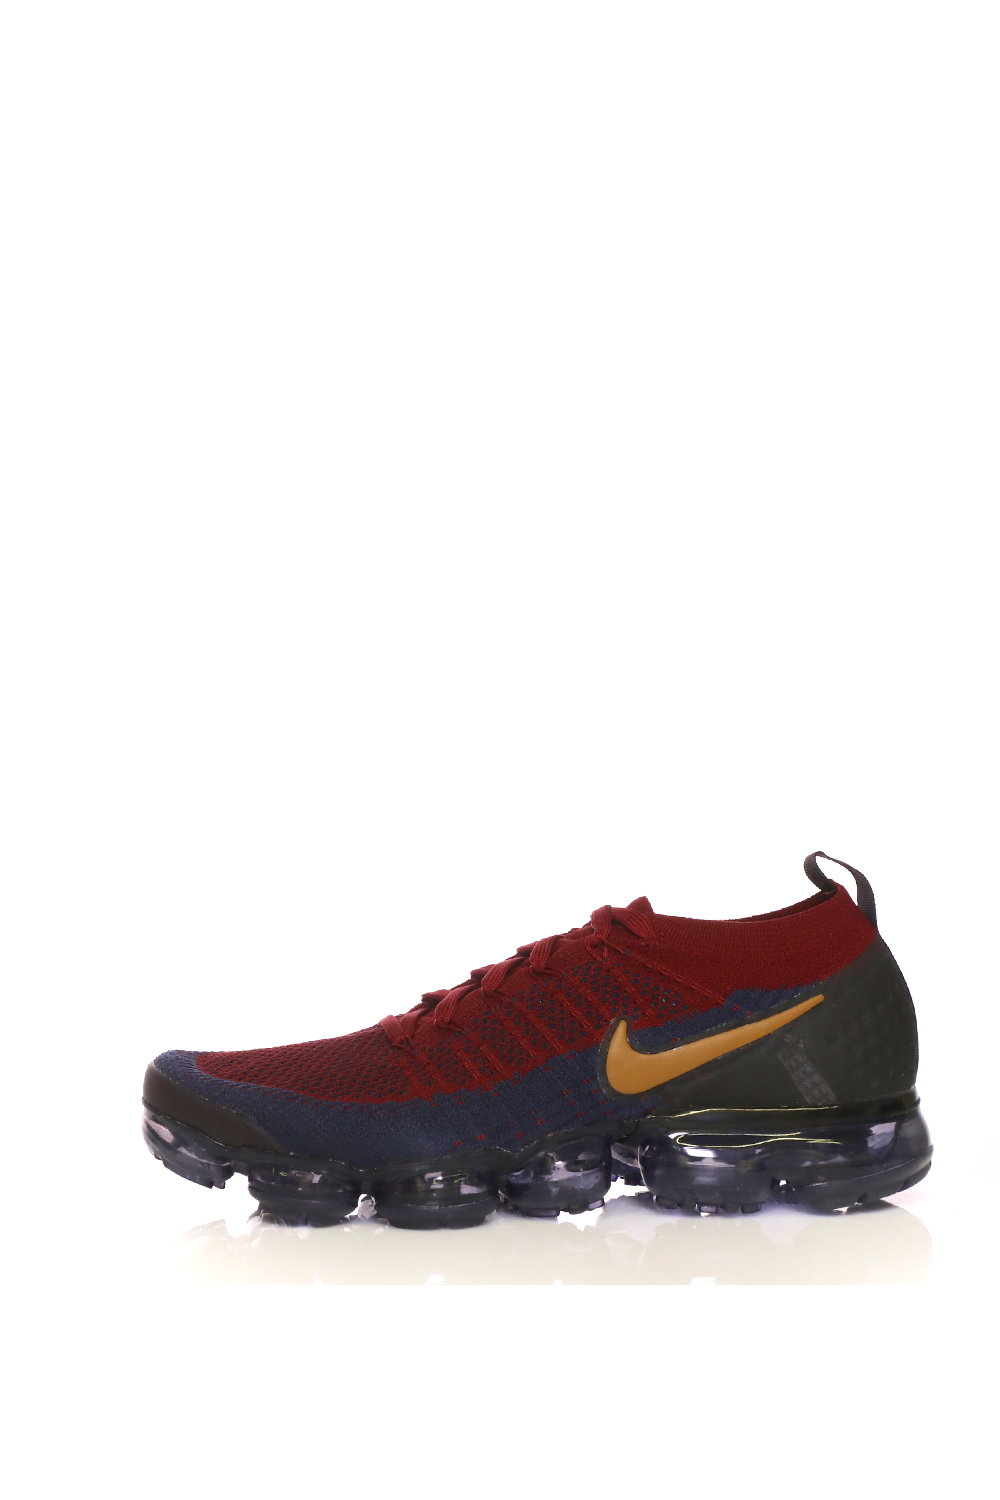 39b54e57782 -30% Factory Outlet NIKE – Ανδρικά παπούτσια NIKE AIR VAPORMAX FLYKNIT 2  μπορντό